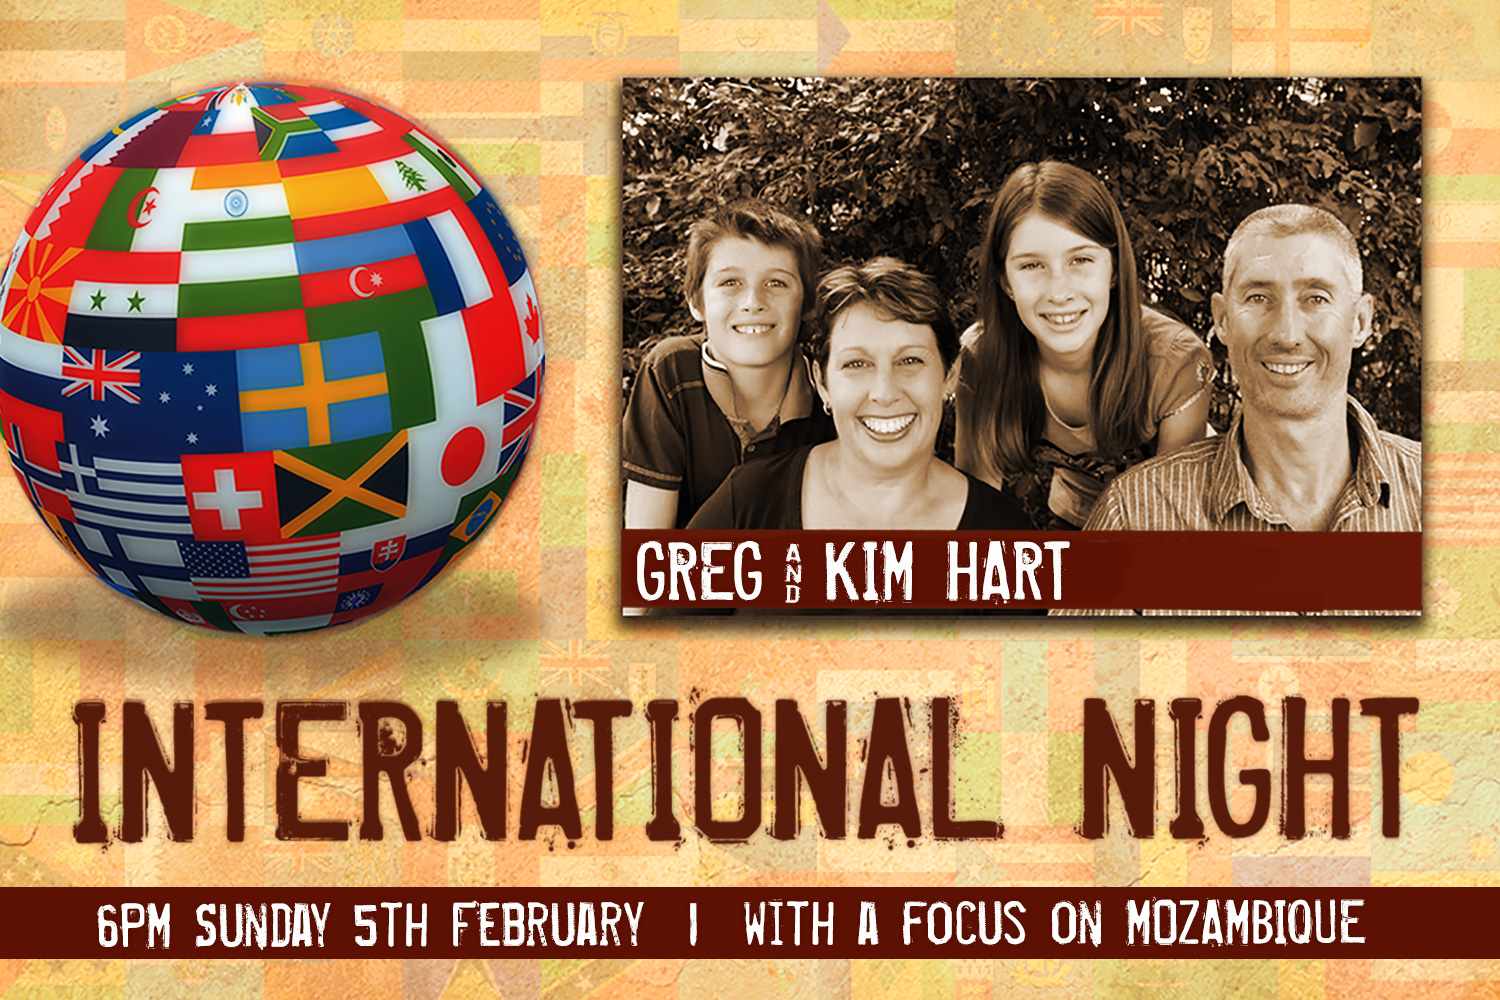 International-Night-Harts-Africa-web-feature.jpg